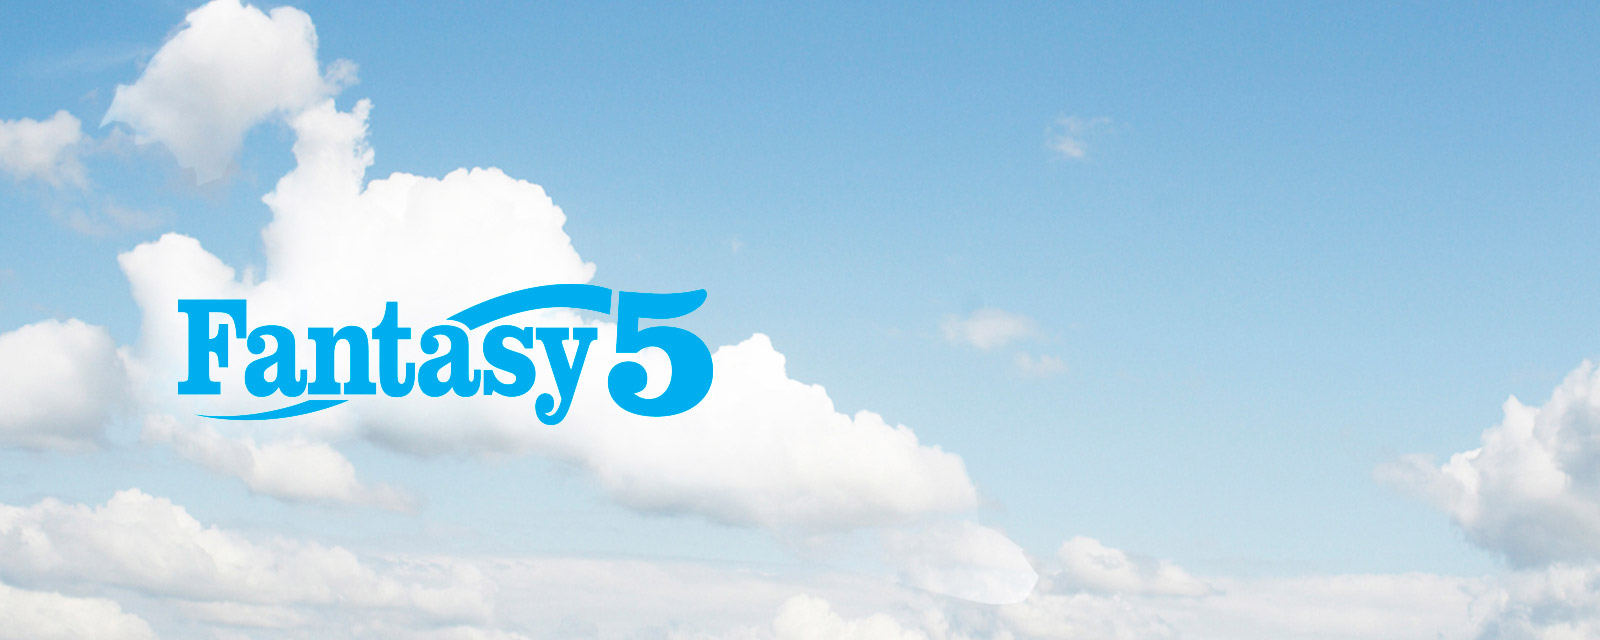 Fantasy 5 logo on a blue sky with clouds.